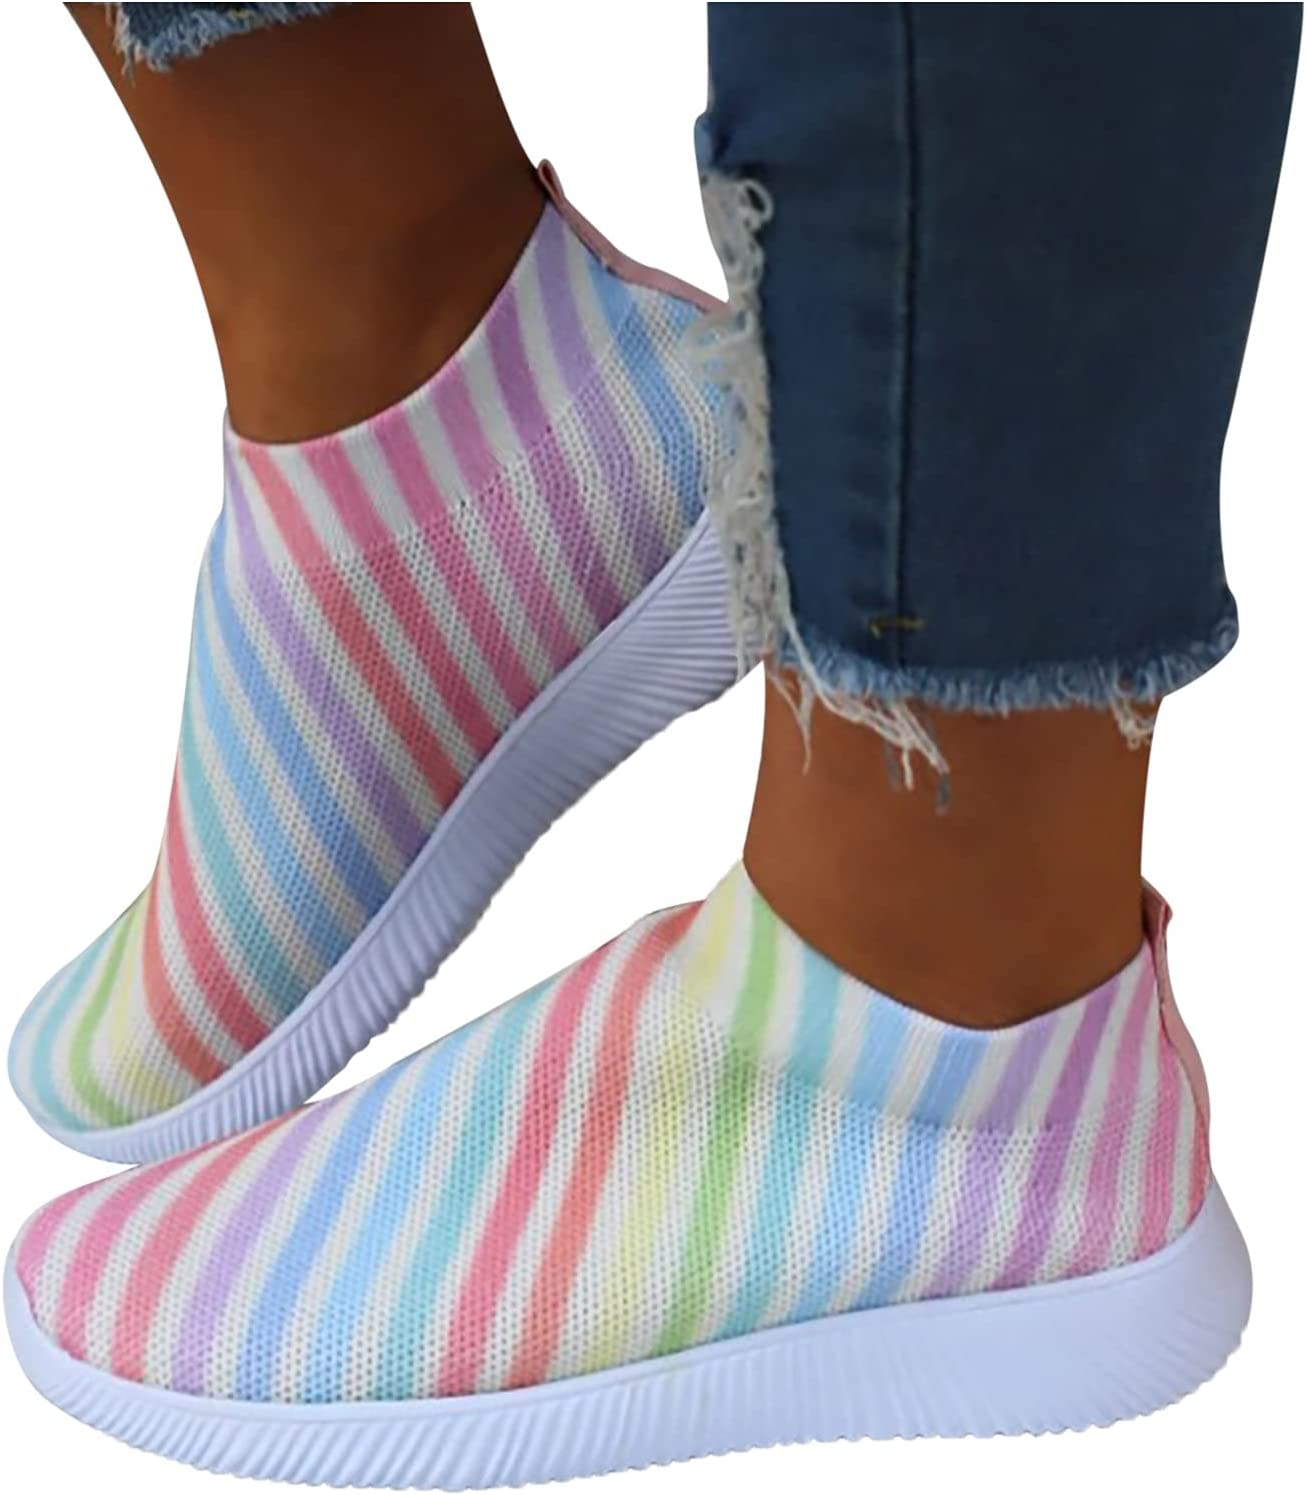 Olymmont Fashion Sneakers for Women Me Memphis Mall Multicolor Ranking TOP14 Stripe Running